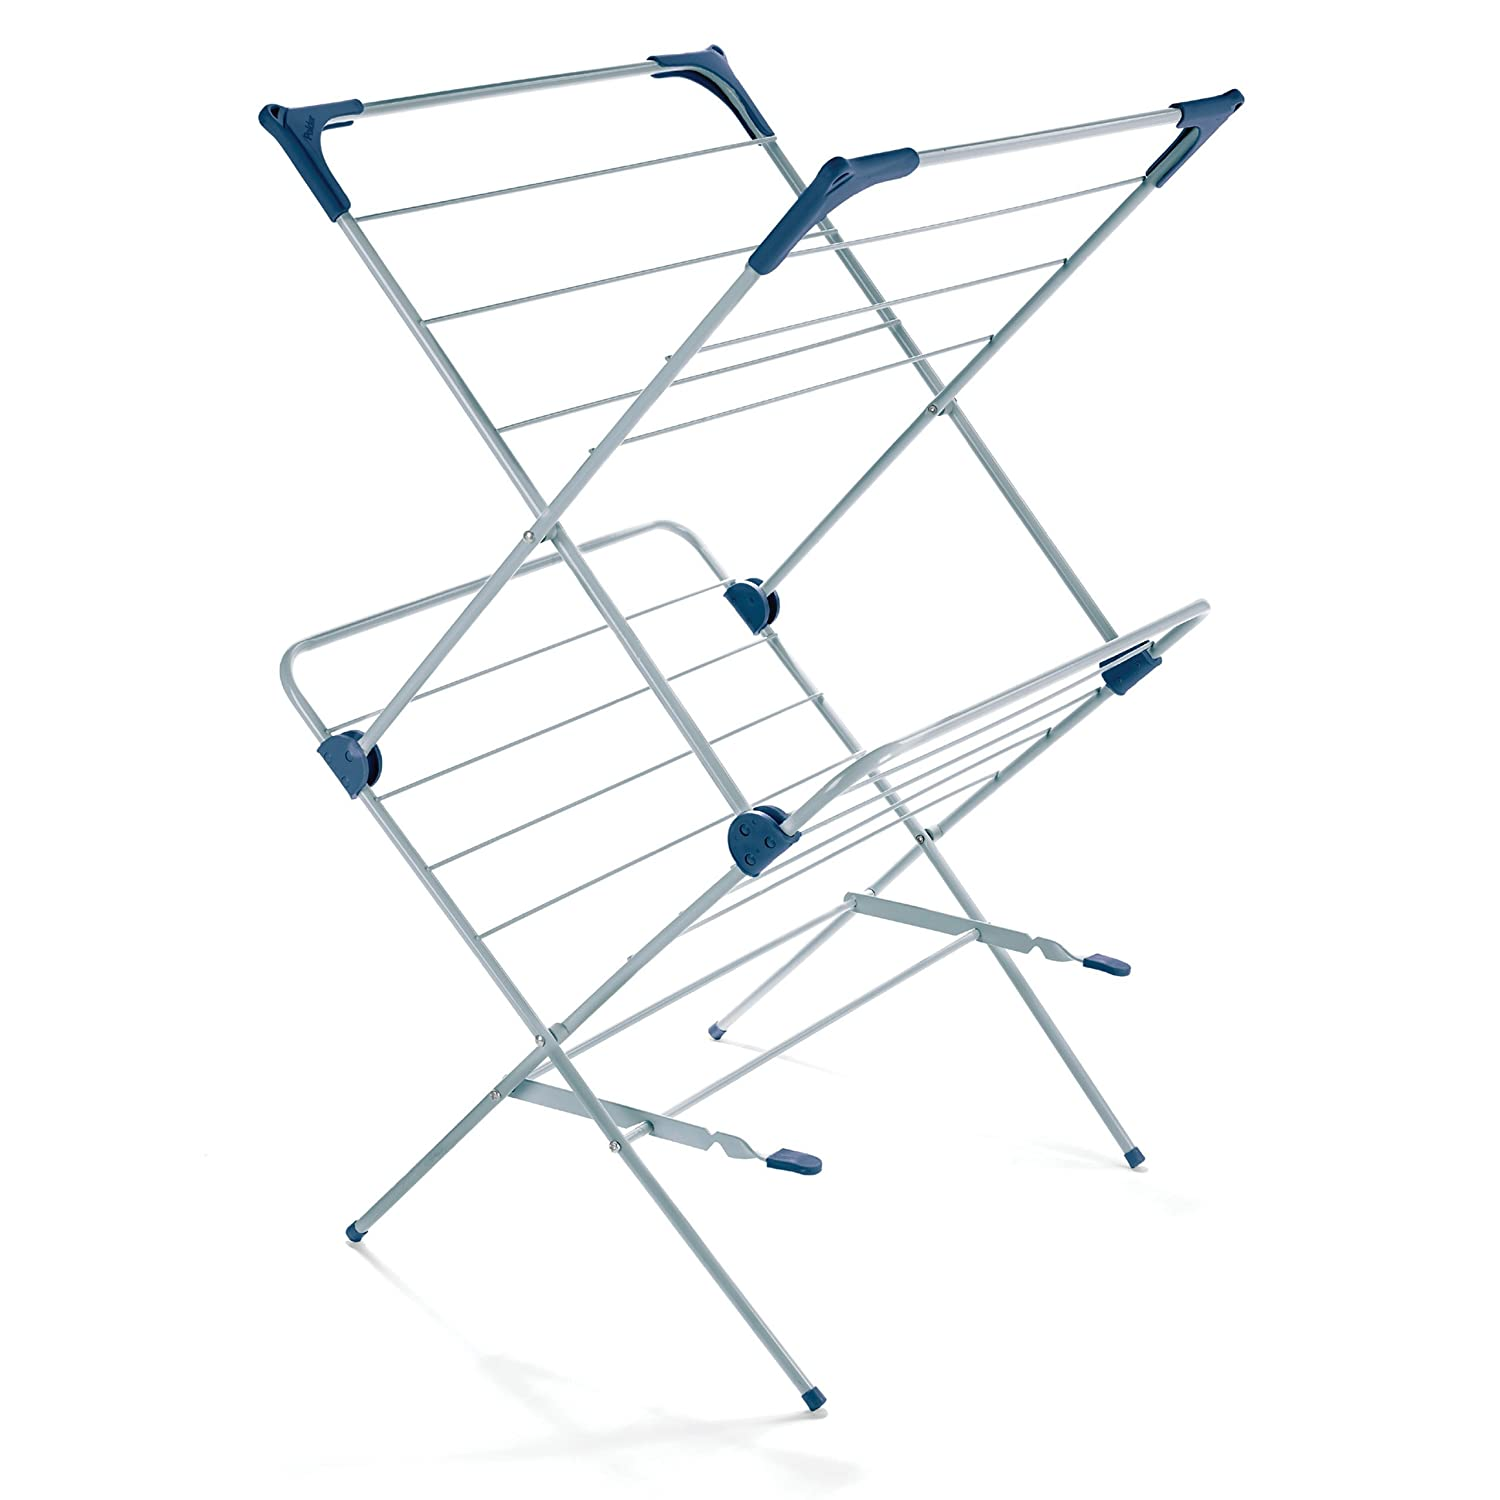 Polder Inc Polder Two-Tier Free Standing Clothes Drying Rack with Mesh Garment Dryer